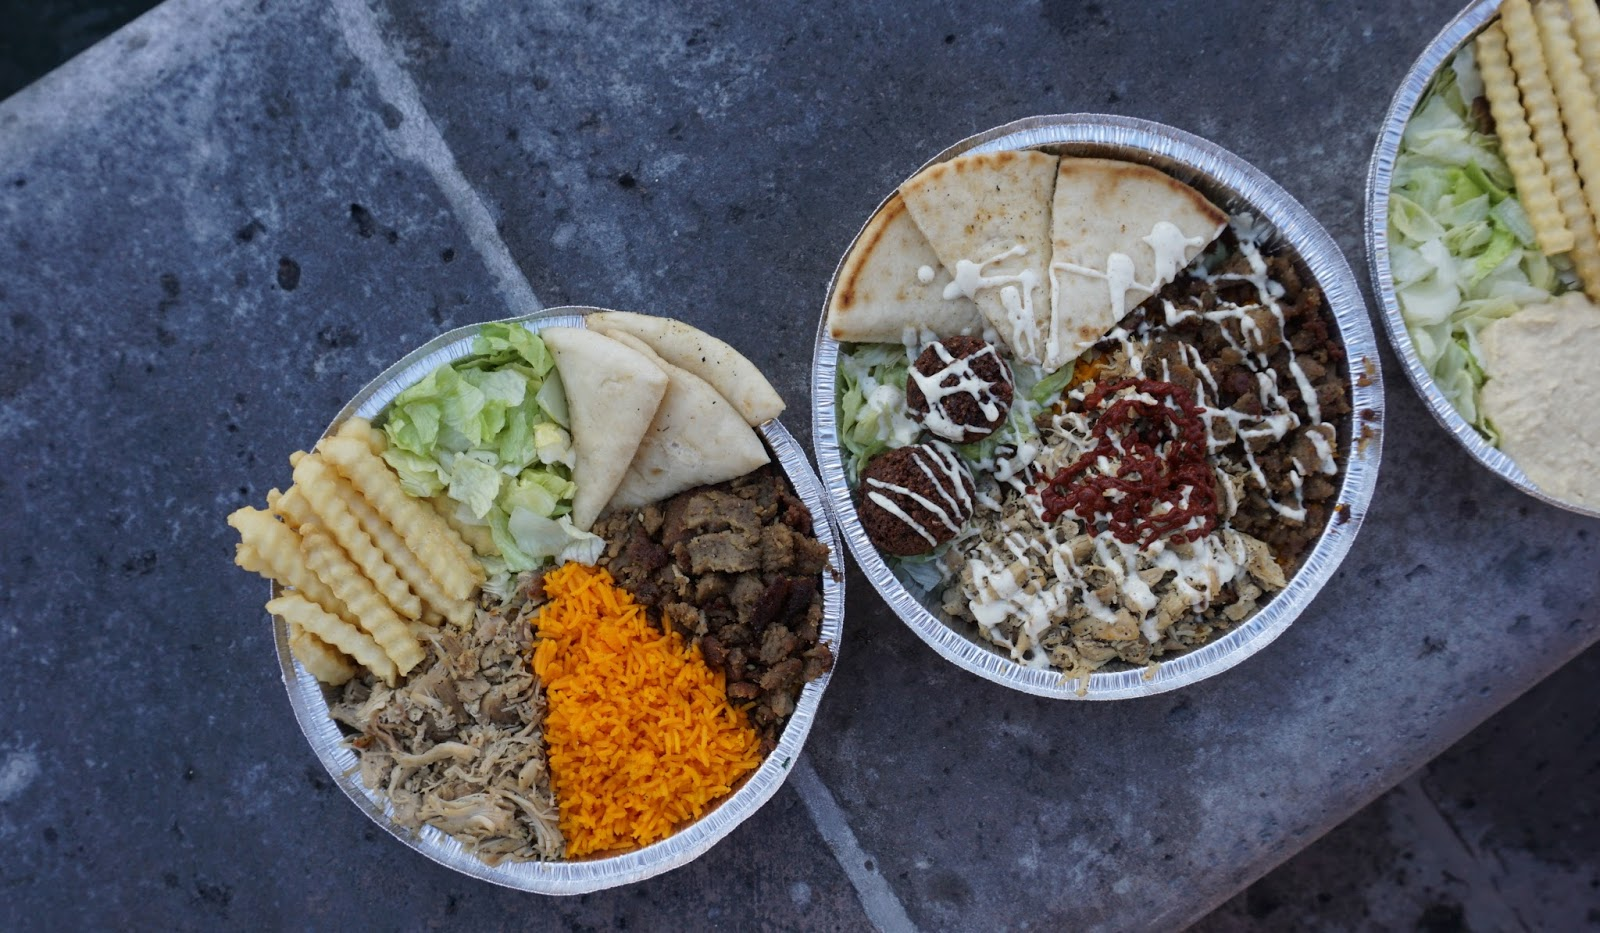 [GIVEAWAY] Halal At Your Squad And Feast On @ Halal Guys